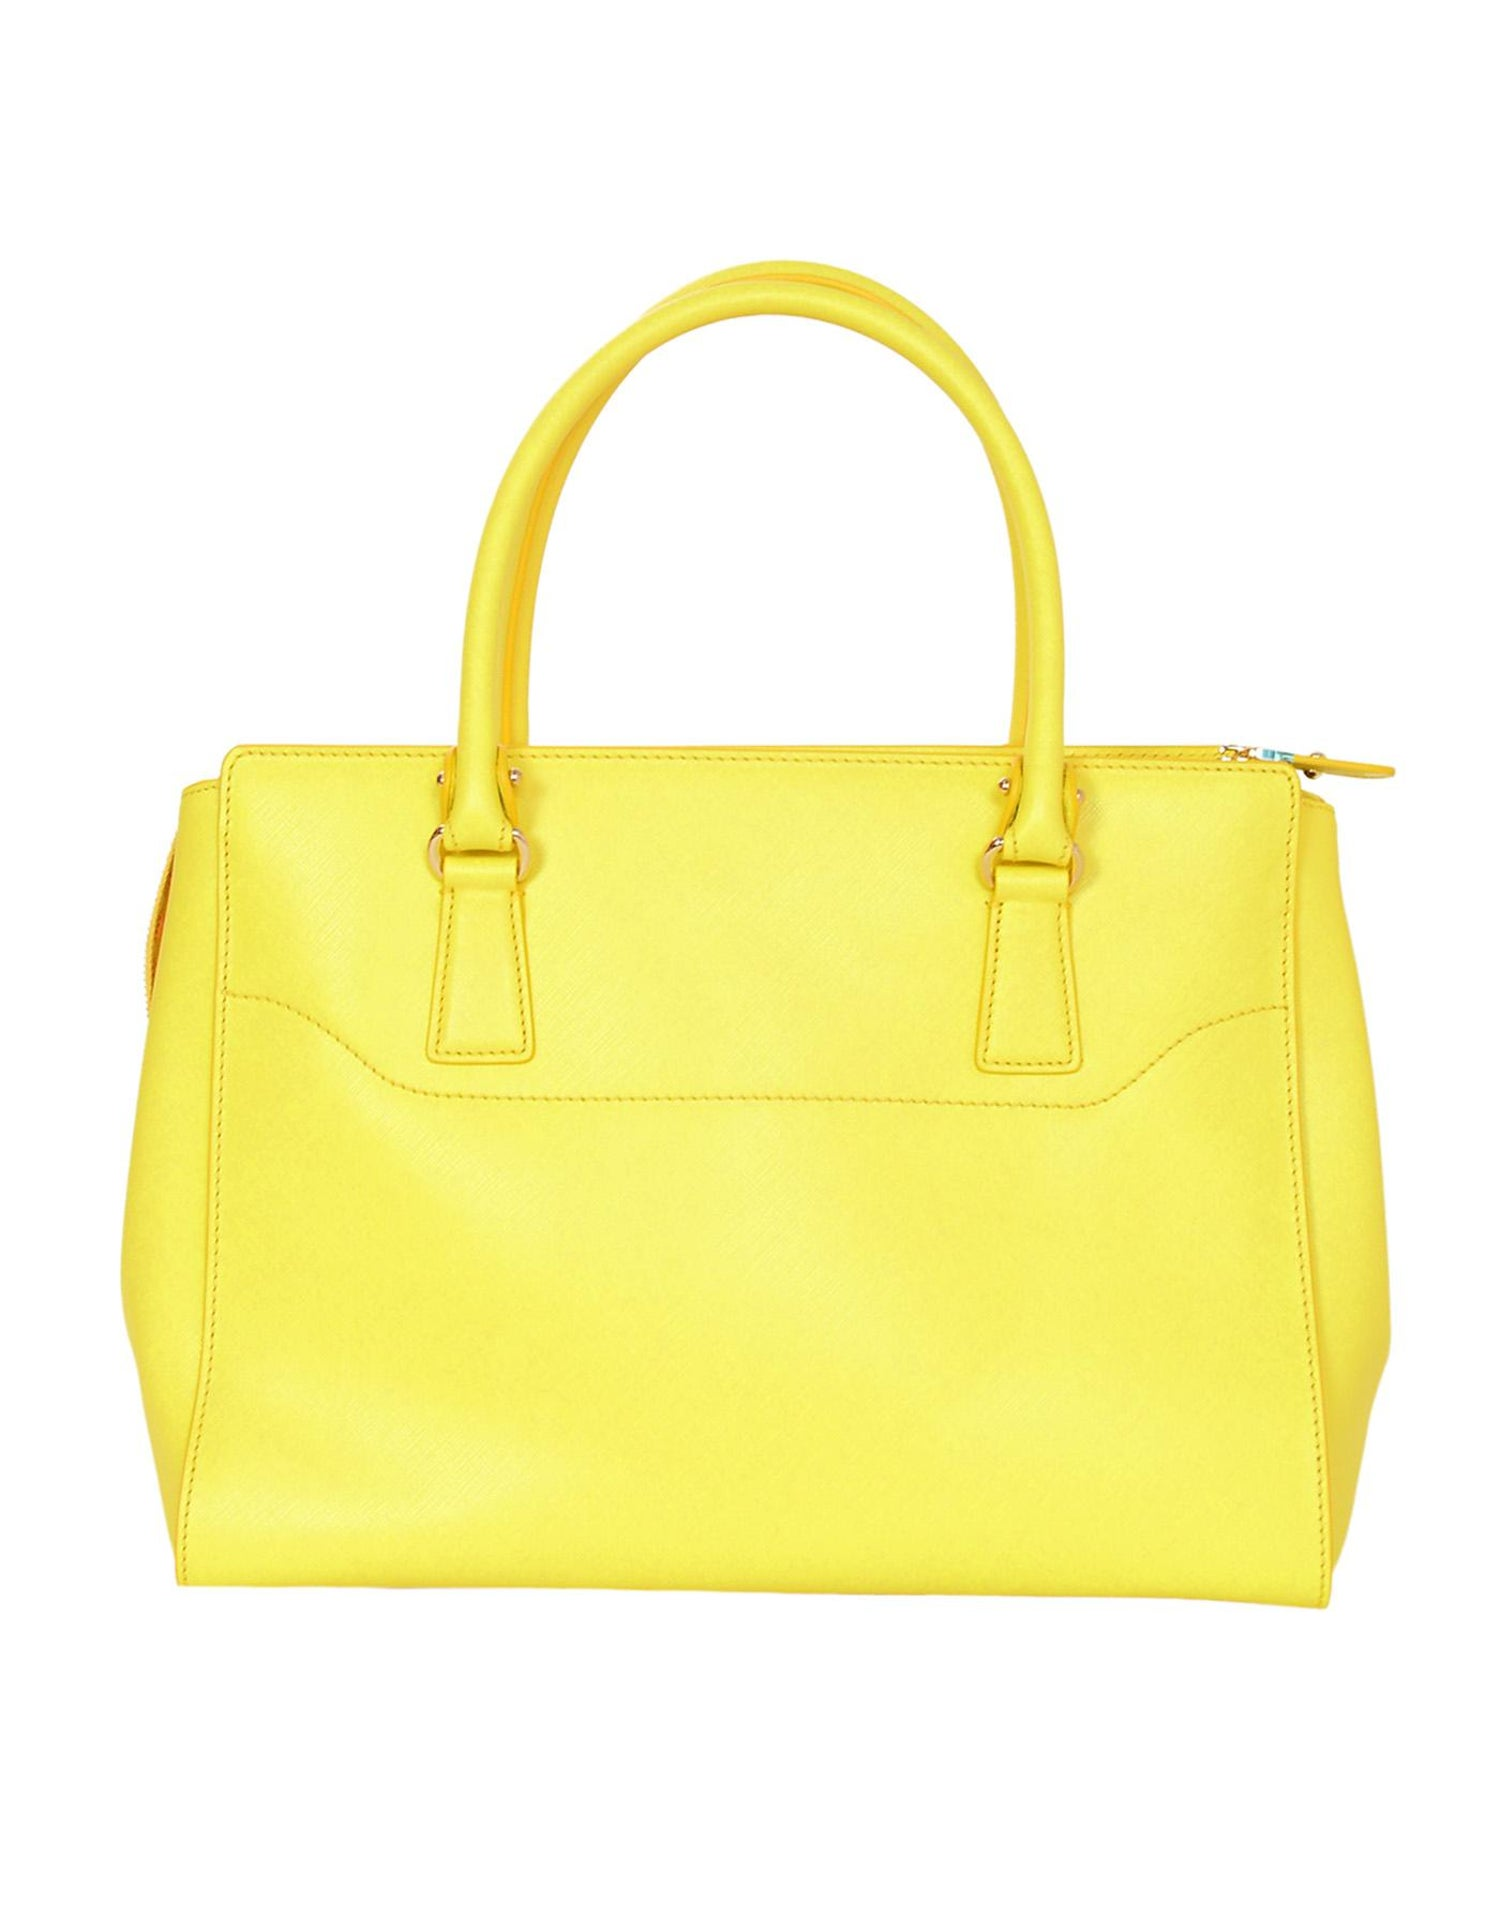 1d6aab267d Salvatore Ferragamo Mimosa Yellow Large Gianco Beky Saffiano Leather Tote  Bag at 1stdibs